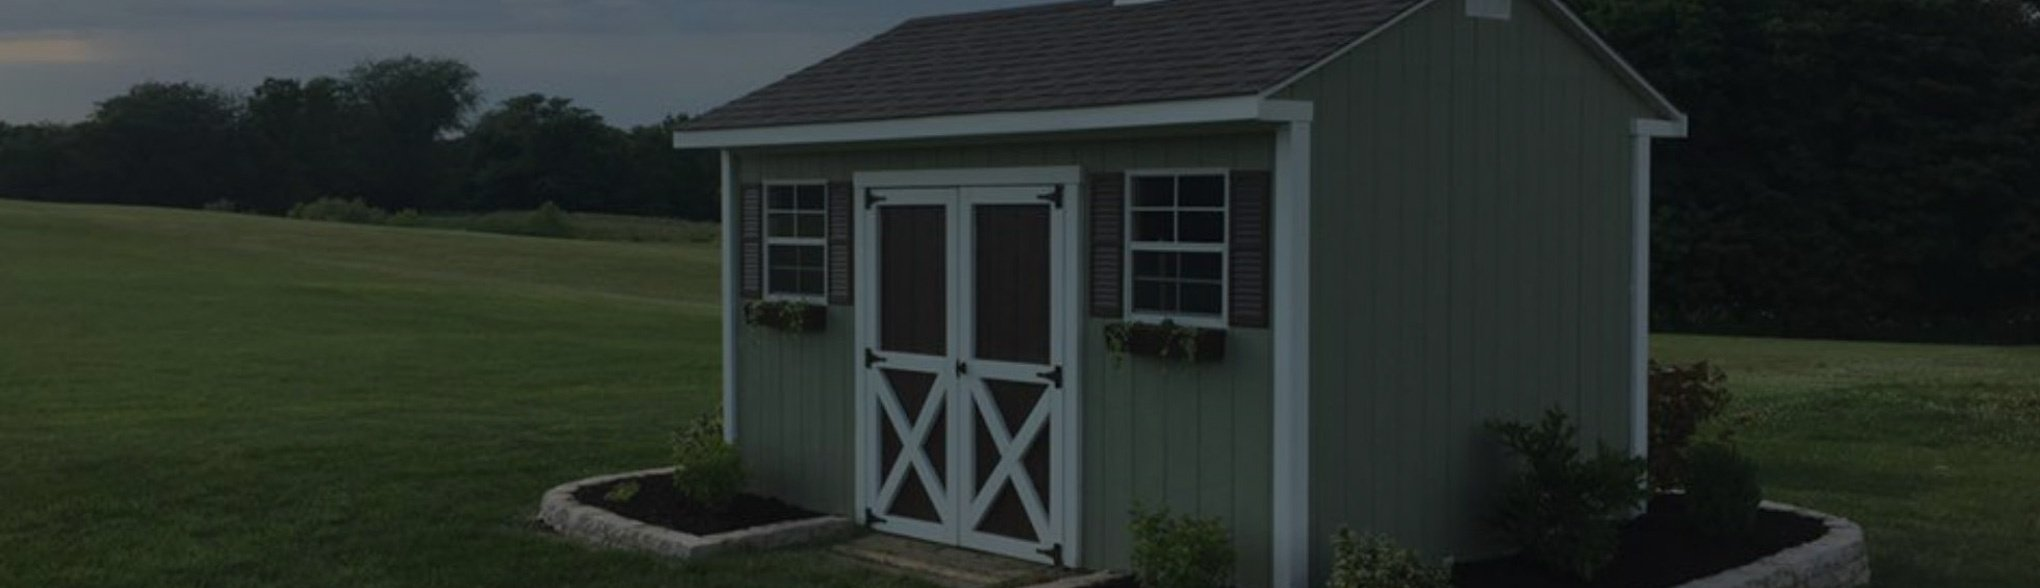 Clinton Custom Sheds | Shed Additions | Outdoor Construction